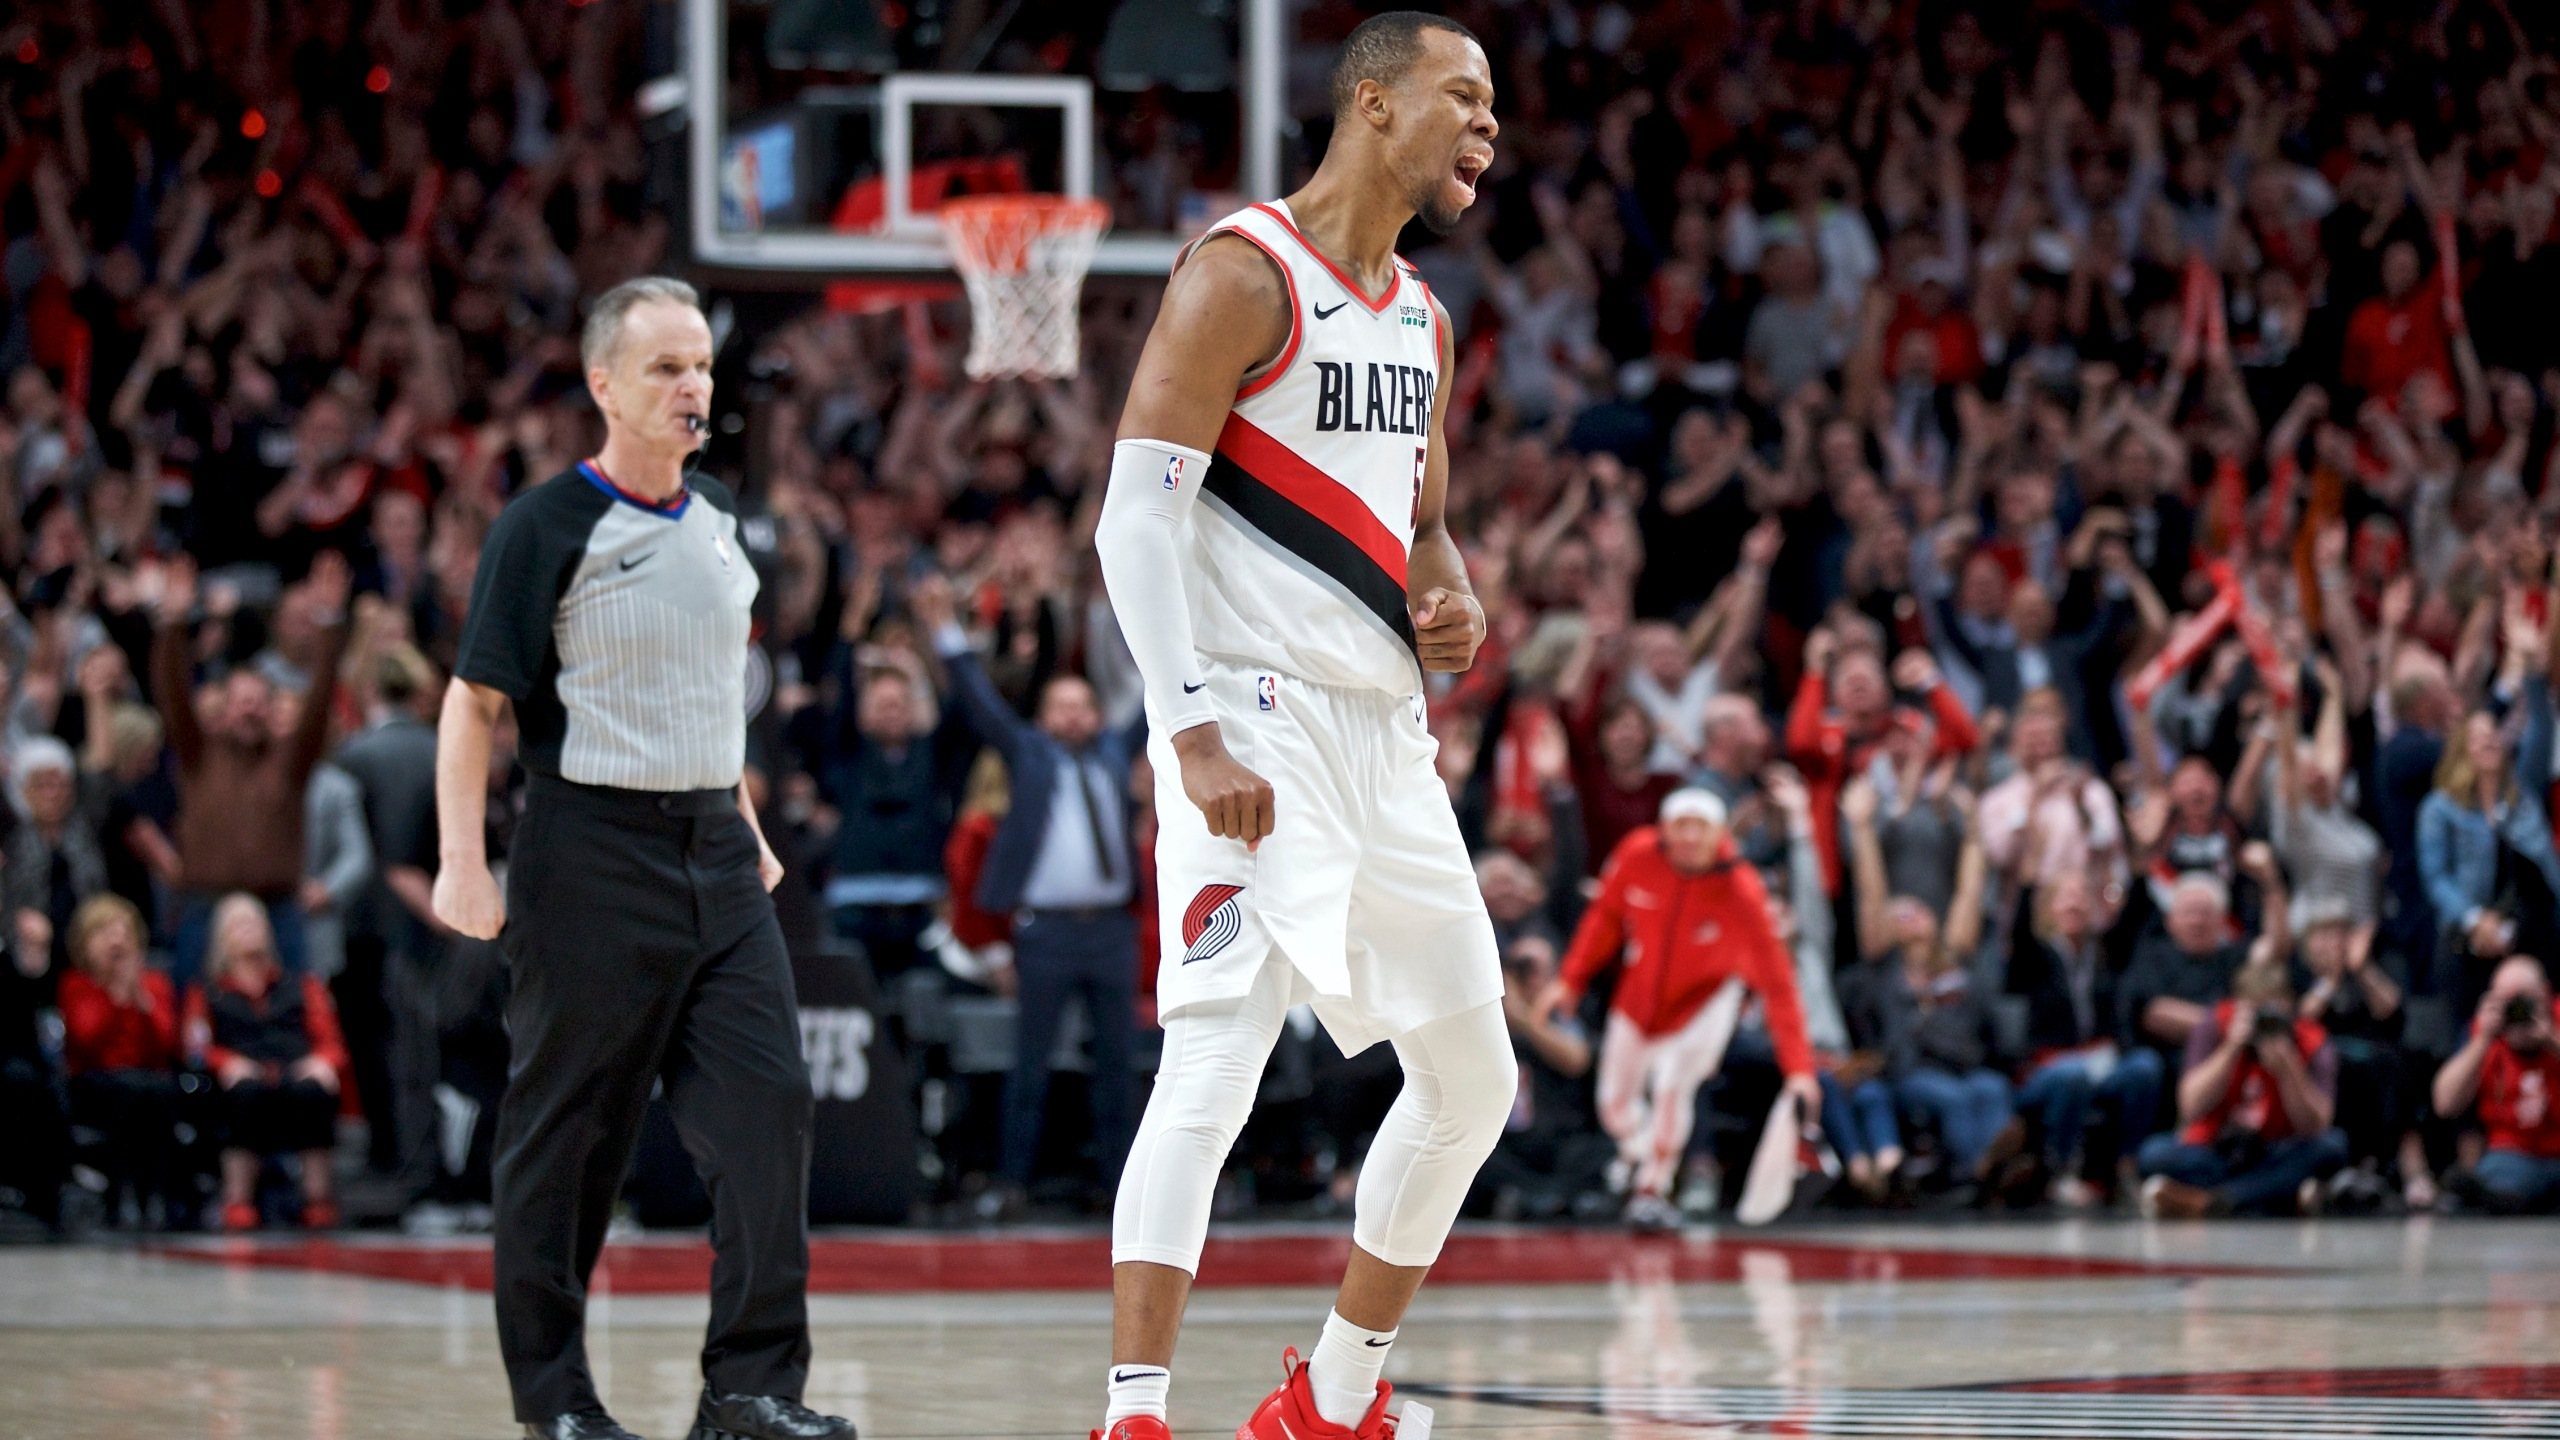 Nuggets_Trail_Blazers_Basketball_53106-159532.jpg41427119